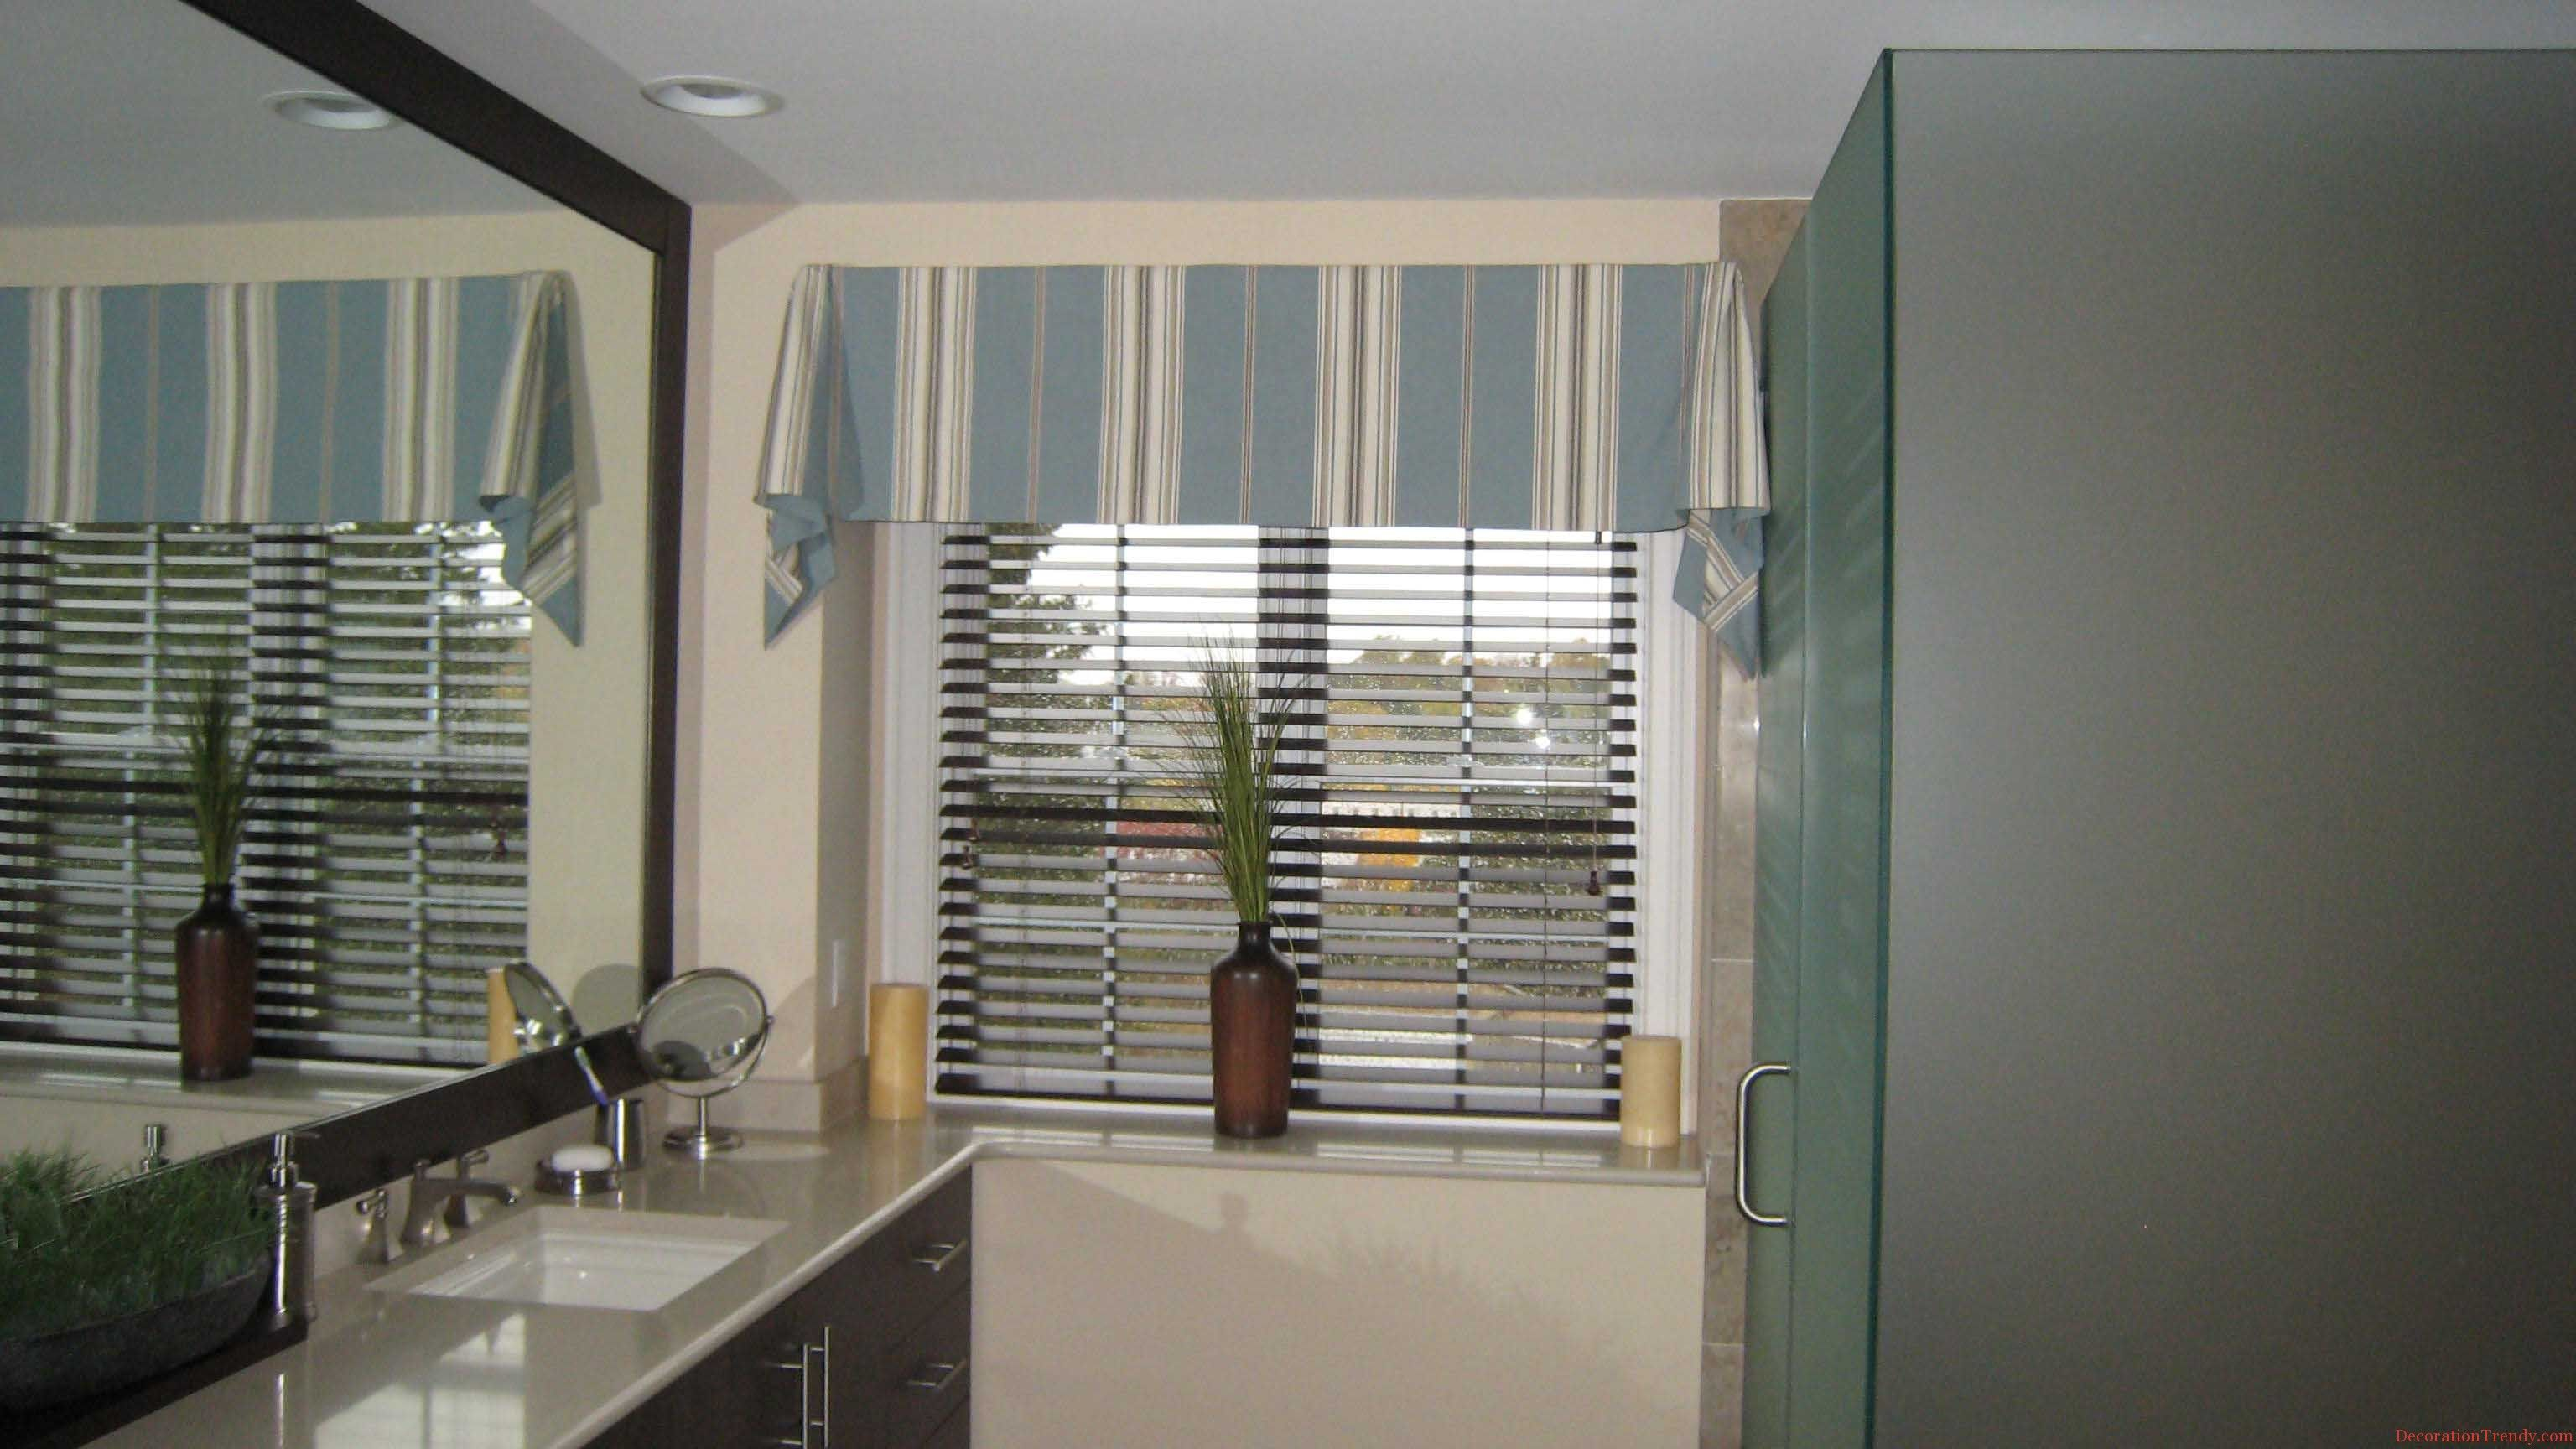 Bath curtain models may be of interest bathroom design pinterest